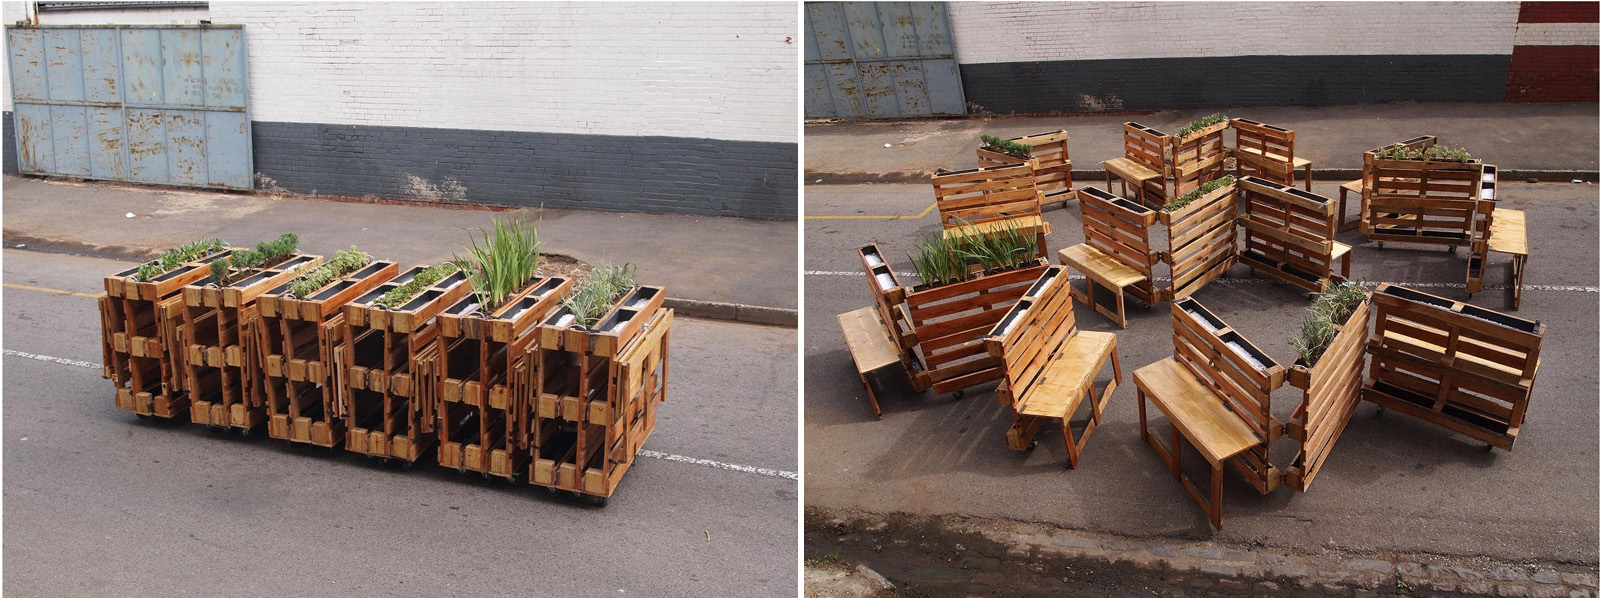 Muebles Pailets - Brothers In Benches Urban Furniture With Recycled Pallets Street [mjhdah]http://www.manualidadesdiy.com/wp-content/uploads/2016/02/paletss.jpg